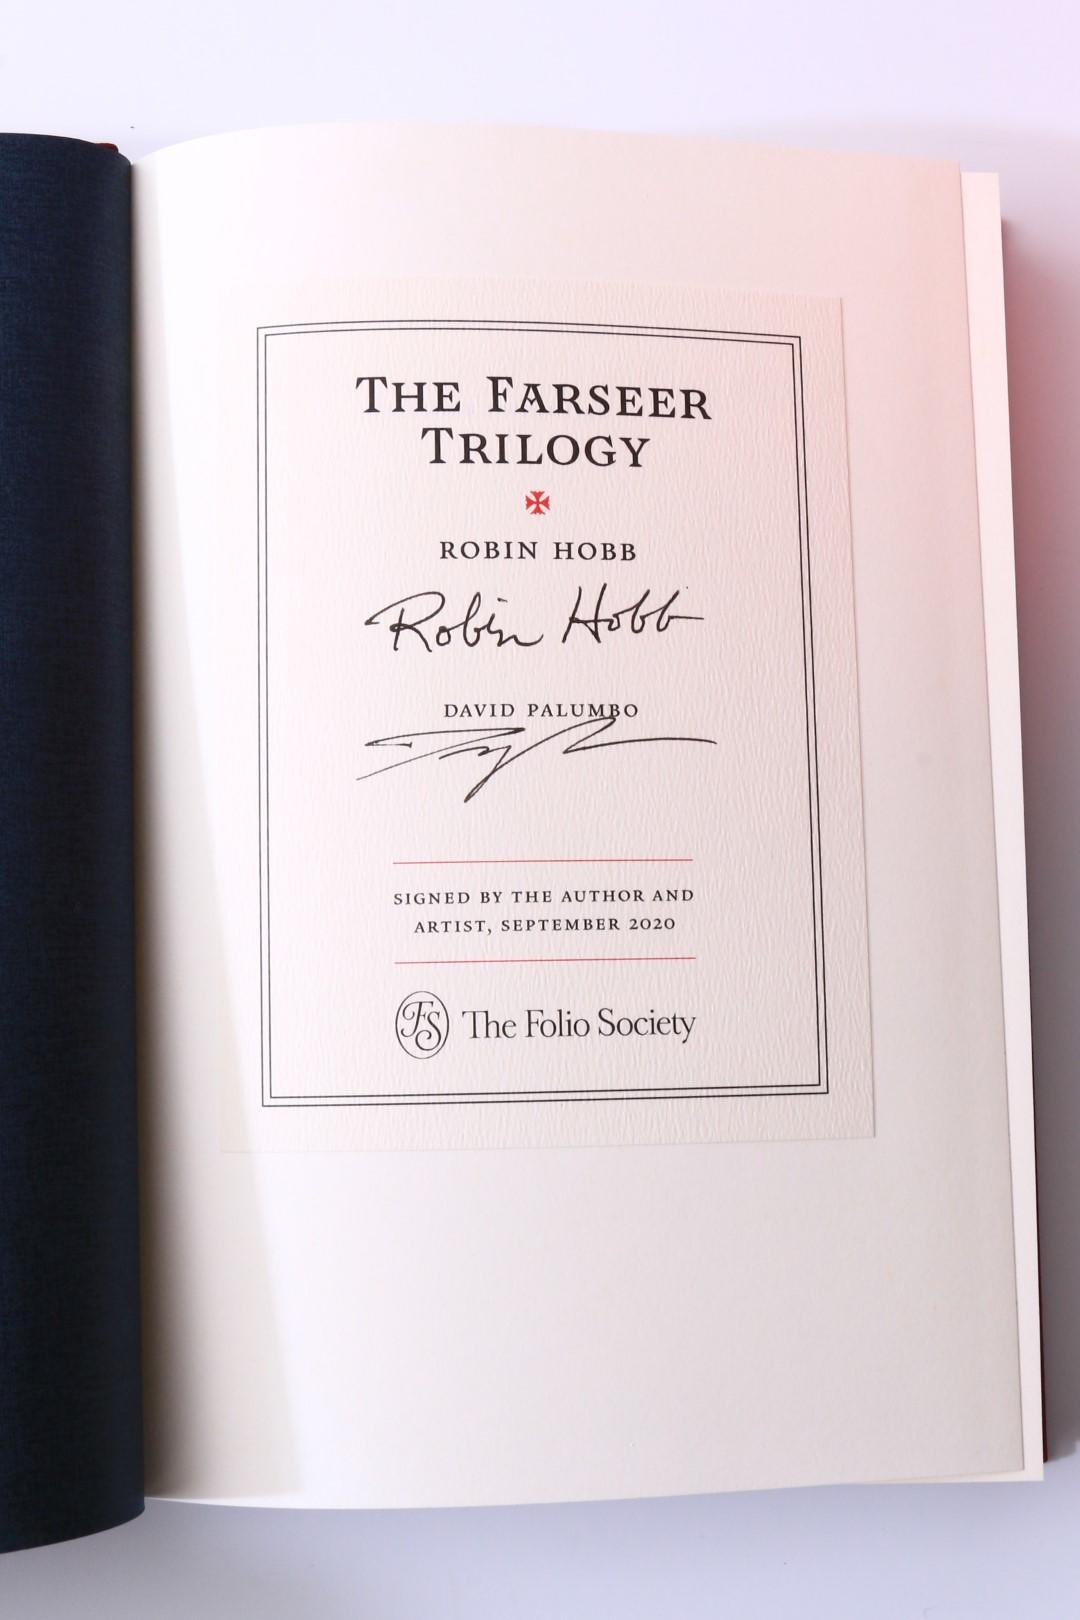 Robin Hobb - The Farseer Trilogy [comprising] Assassin's Apprentice, Royal Assassin and Assassin's Quest - Folio Society, 2020, Signed Limited Edition.